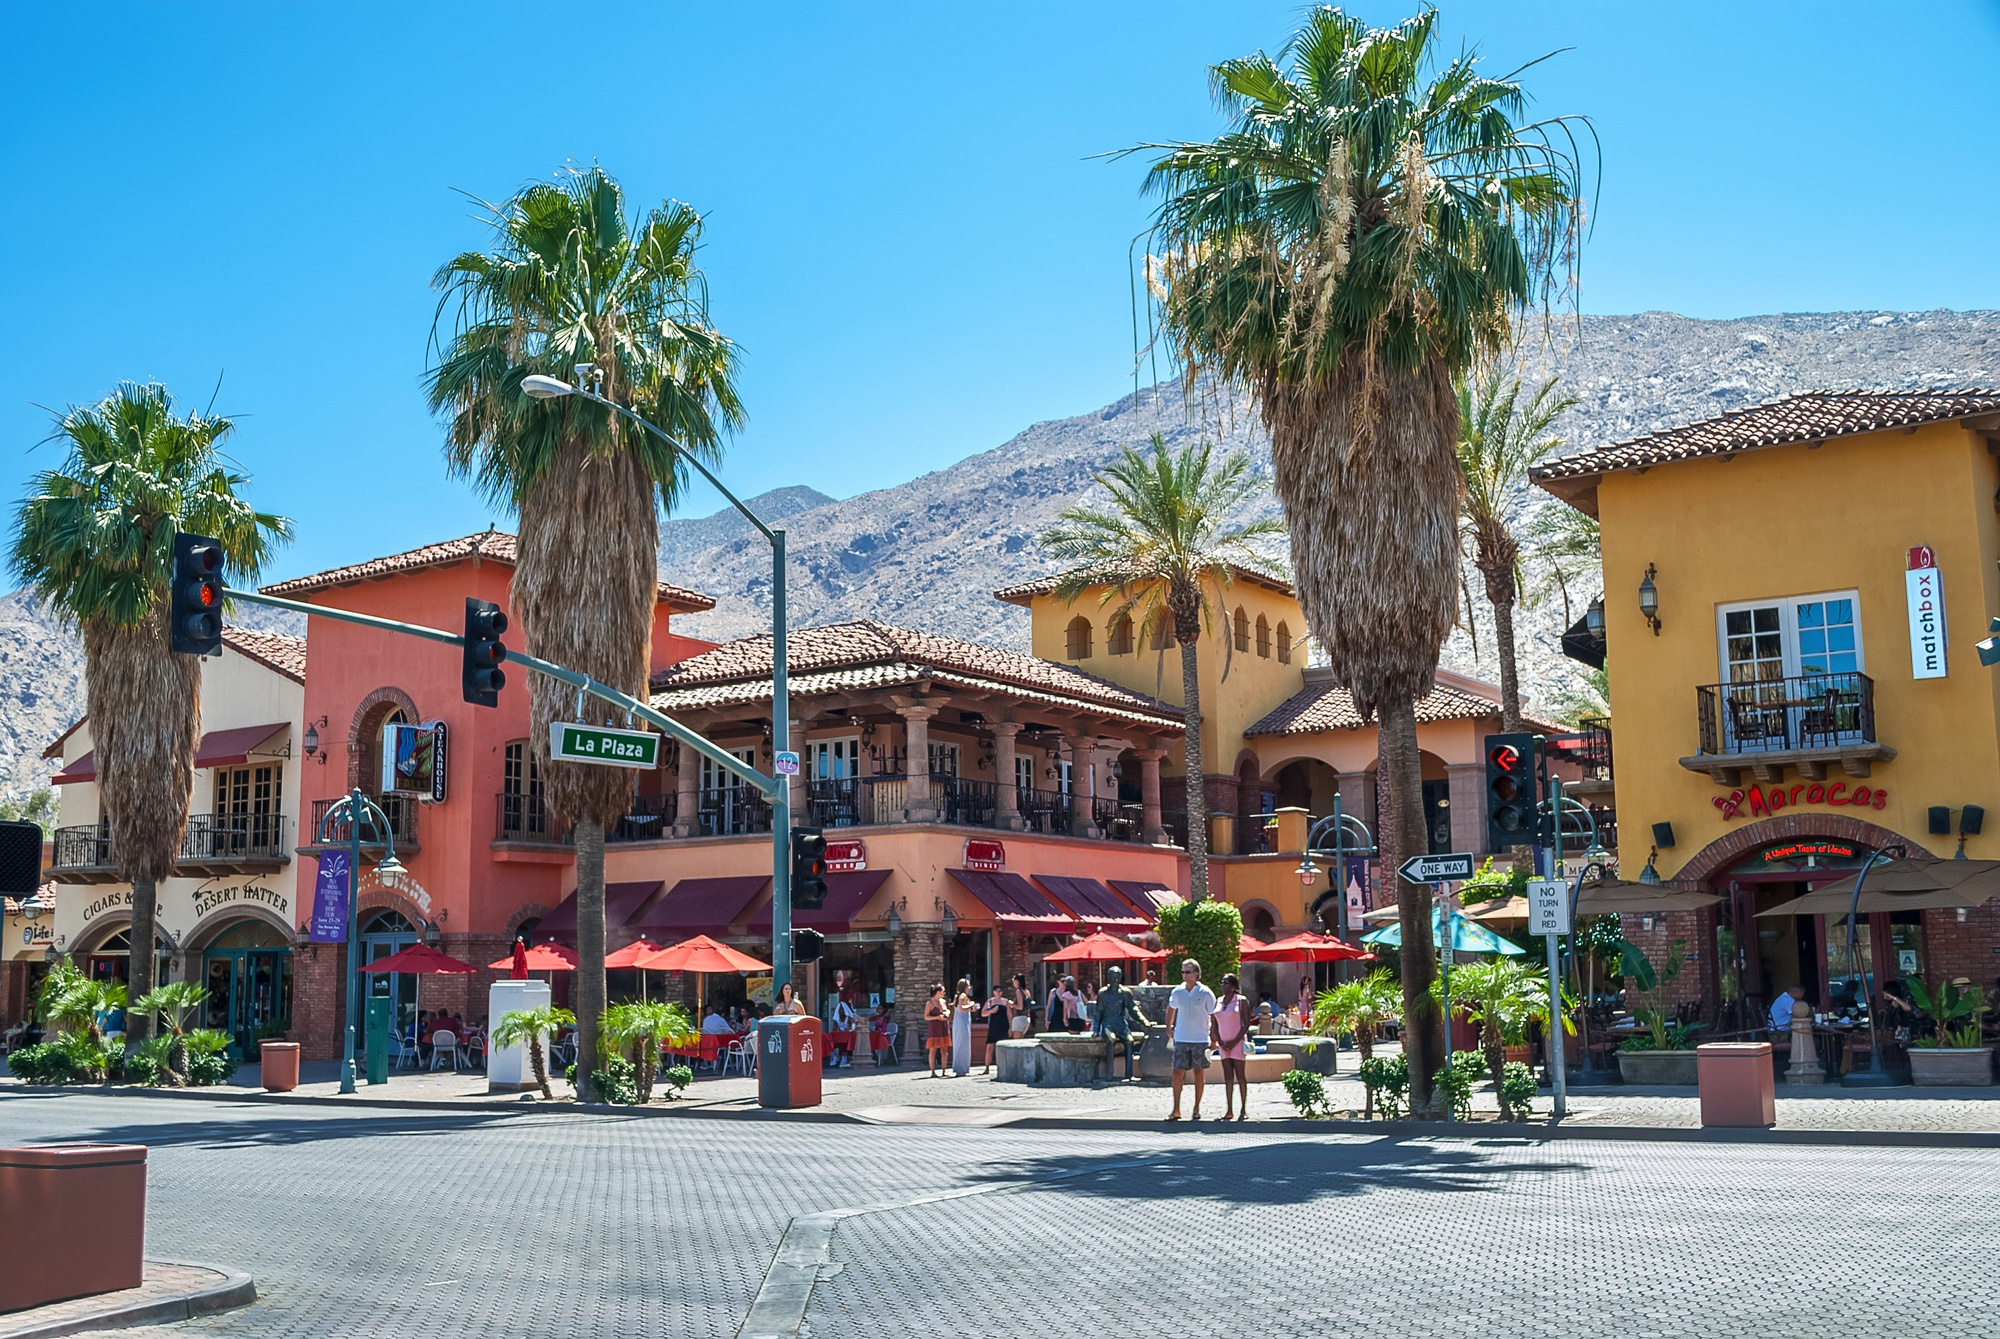 La Plaza shopping and restaurant area in Palm Springs